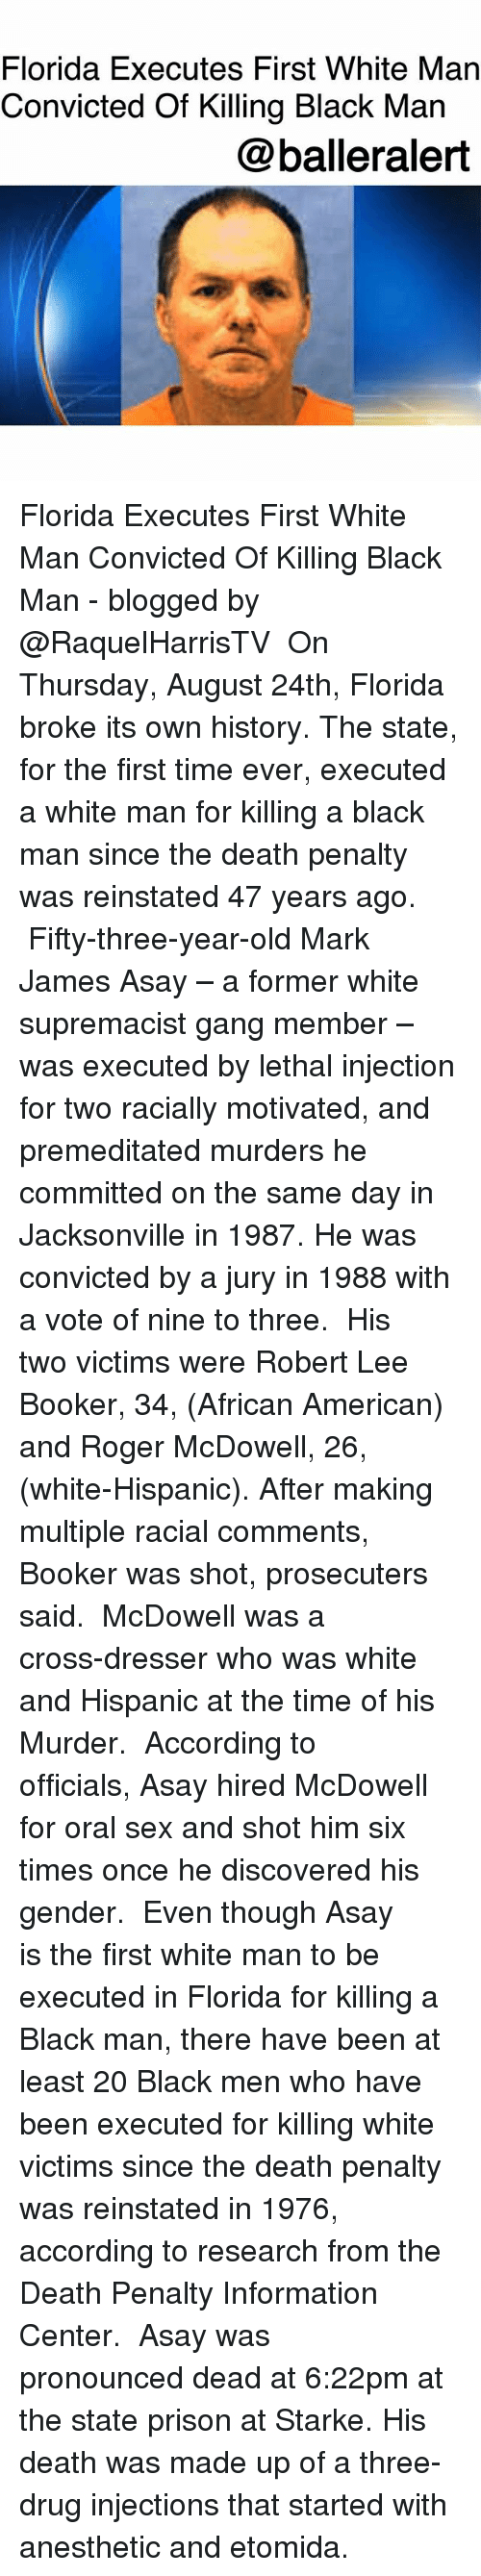 Centere: Florida Executes First White Man  Convicted Of Killing Black Man  @balleralert Florida Executes First White Man Convicted Of Killing Black Man - blogged by @RaquelHarrisTV ⠀⠀⠀⠀⠀⠀⠀ On Thursday, August 24th, Florida broke its own history. The state, for the first time ever, executed a white man for killing a black man since the death penalty was reinstated 47 years ago. ⠀⠀⠀⠀⠀⠀⠀ Fifty-three-year-old Mark James Asay – a former white supremacist gang member – was executed by lethal injection for two racially motivated, and premeditated murders he committed on the same day in Jacksonville in 1987. He was convicted by a jury in 1988 with a vote of nine to three. ⠀⠀⠀⠀⠀⠀⠀ His two victims were Robert Lee Booker, 34, (African American) and Roger McDowell, 26, (white-Hispanic). After making multiple racial comments, Booker was shot, prosecuters said. ⠀⠀⠀⠀⠀⠀⠀ McDowell was a cross-dresser who was white and Hispanic at the time of his Murder. ⠀⠀⠀⠀⠀⠀⠀ According to officials, Asay hired McDowell for oral sex and shot him six times once he discovered his gender. ⠀⠀⠀⠀⠀⠀⠀ Even though Asay is the first white man to be executed in Florida for killing a Black man, there have been at least 20 Black men who have been executed for killing white victims since the death penalty was reinstated in 1976, according to research from the Death Penalty Information Center. ⠀⠀⠀⠀⠀⠀⠀ Asay was pronounced dead at 6:22pm at the state prison at Starke. His death was made up of a three-drug injections that started with anesthetic and etomida.